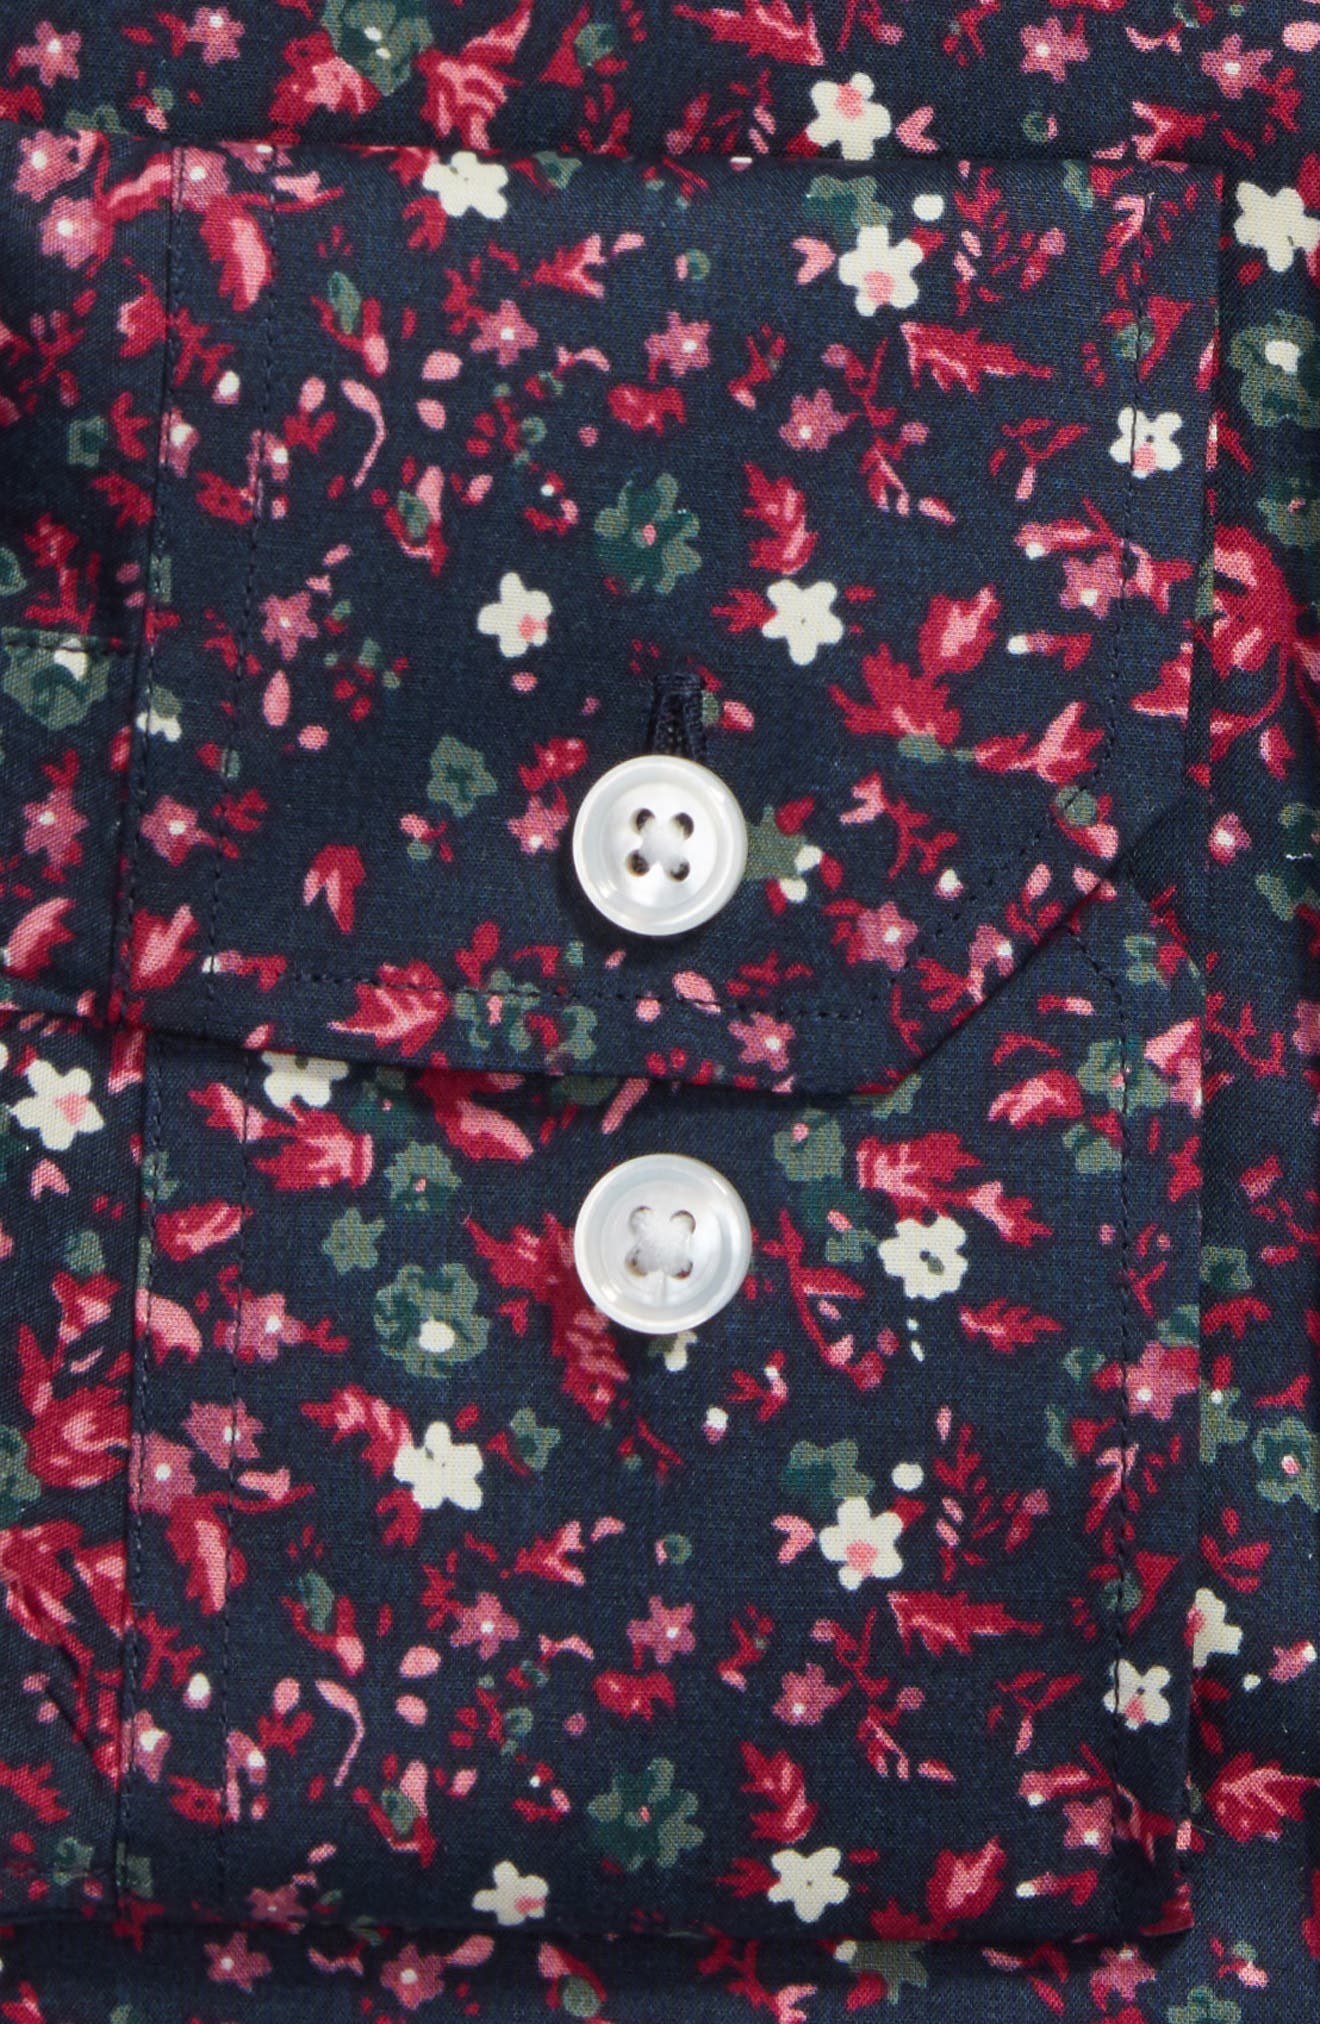 Mali Slim Fit Stretch Floral Dress Shirt,                             Alternate thumbnail 2, color,                             001